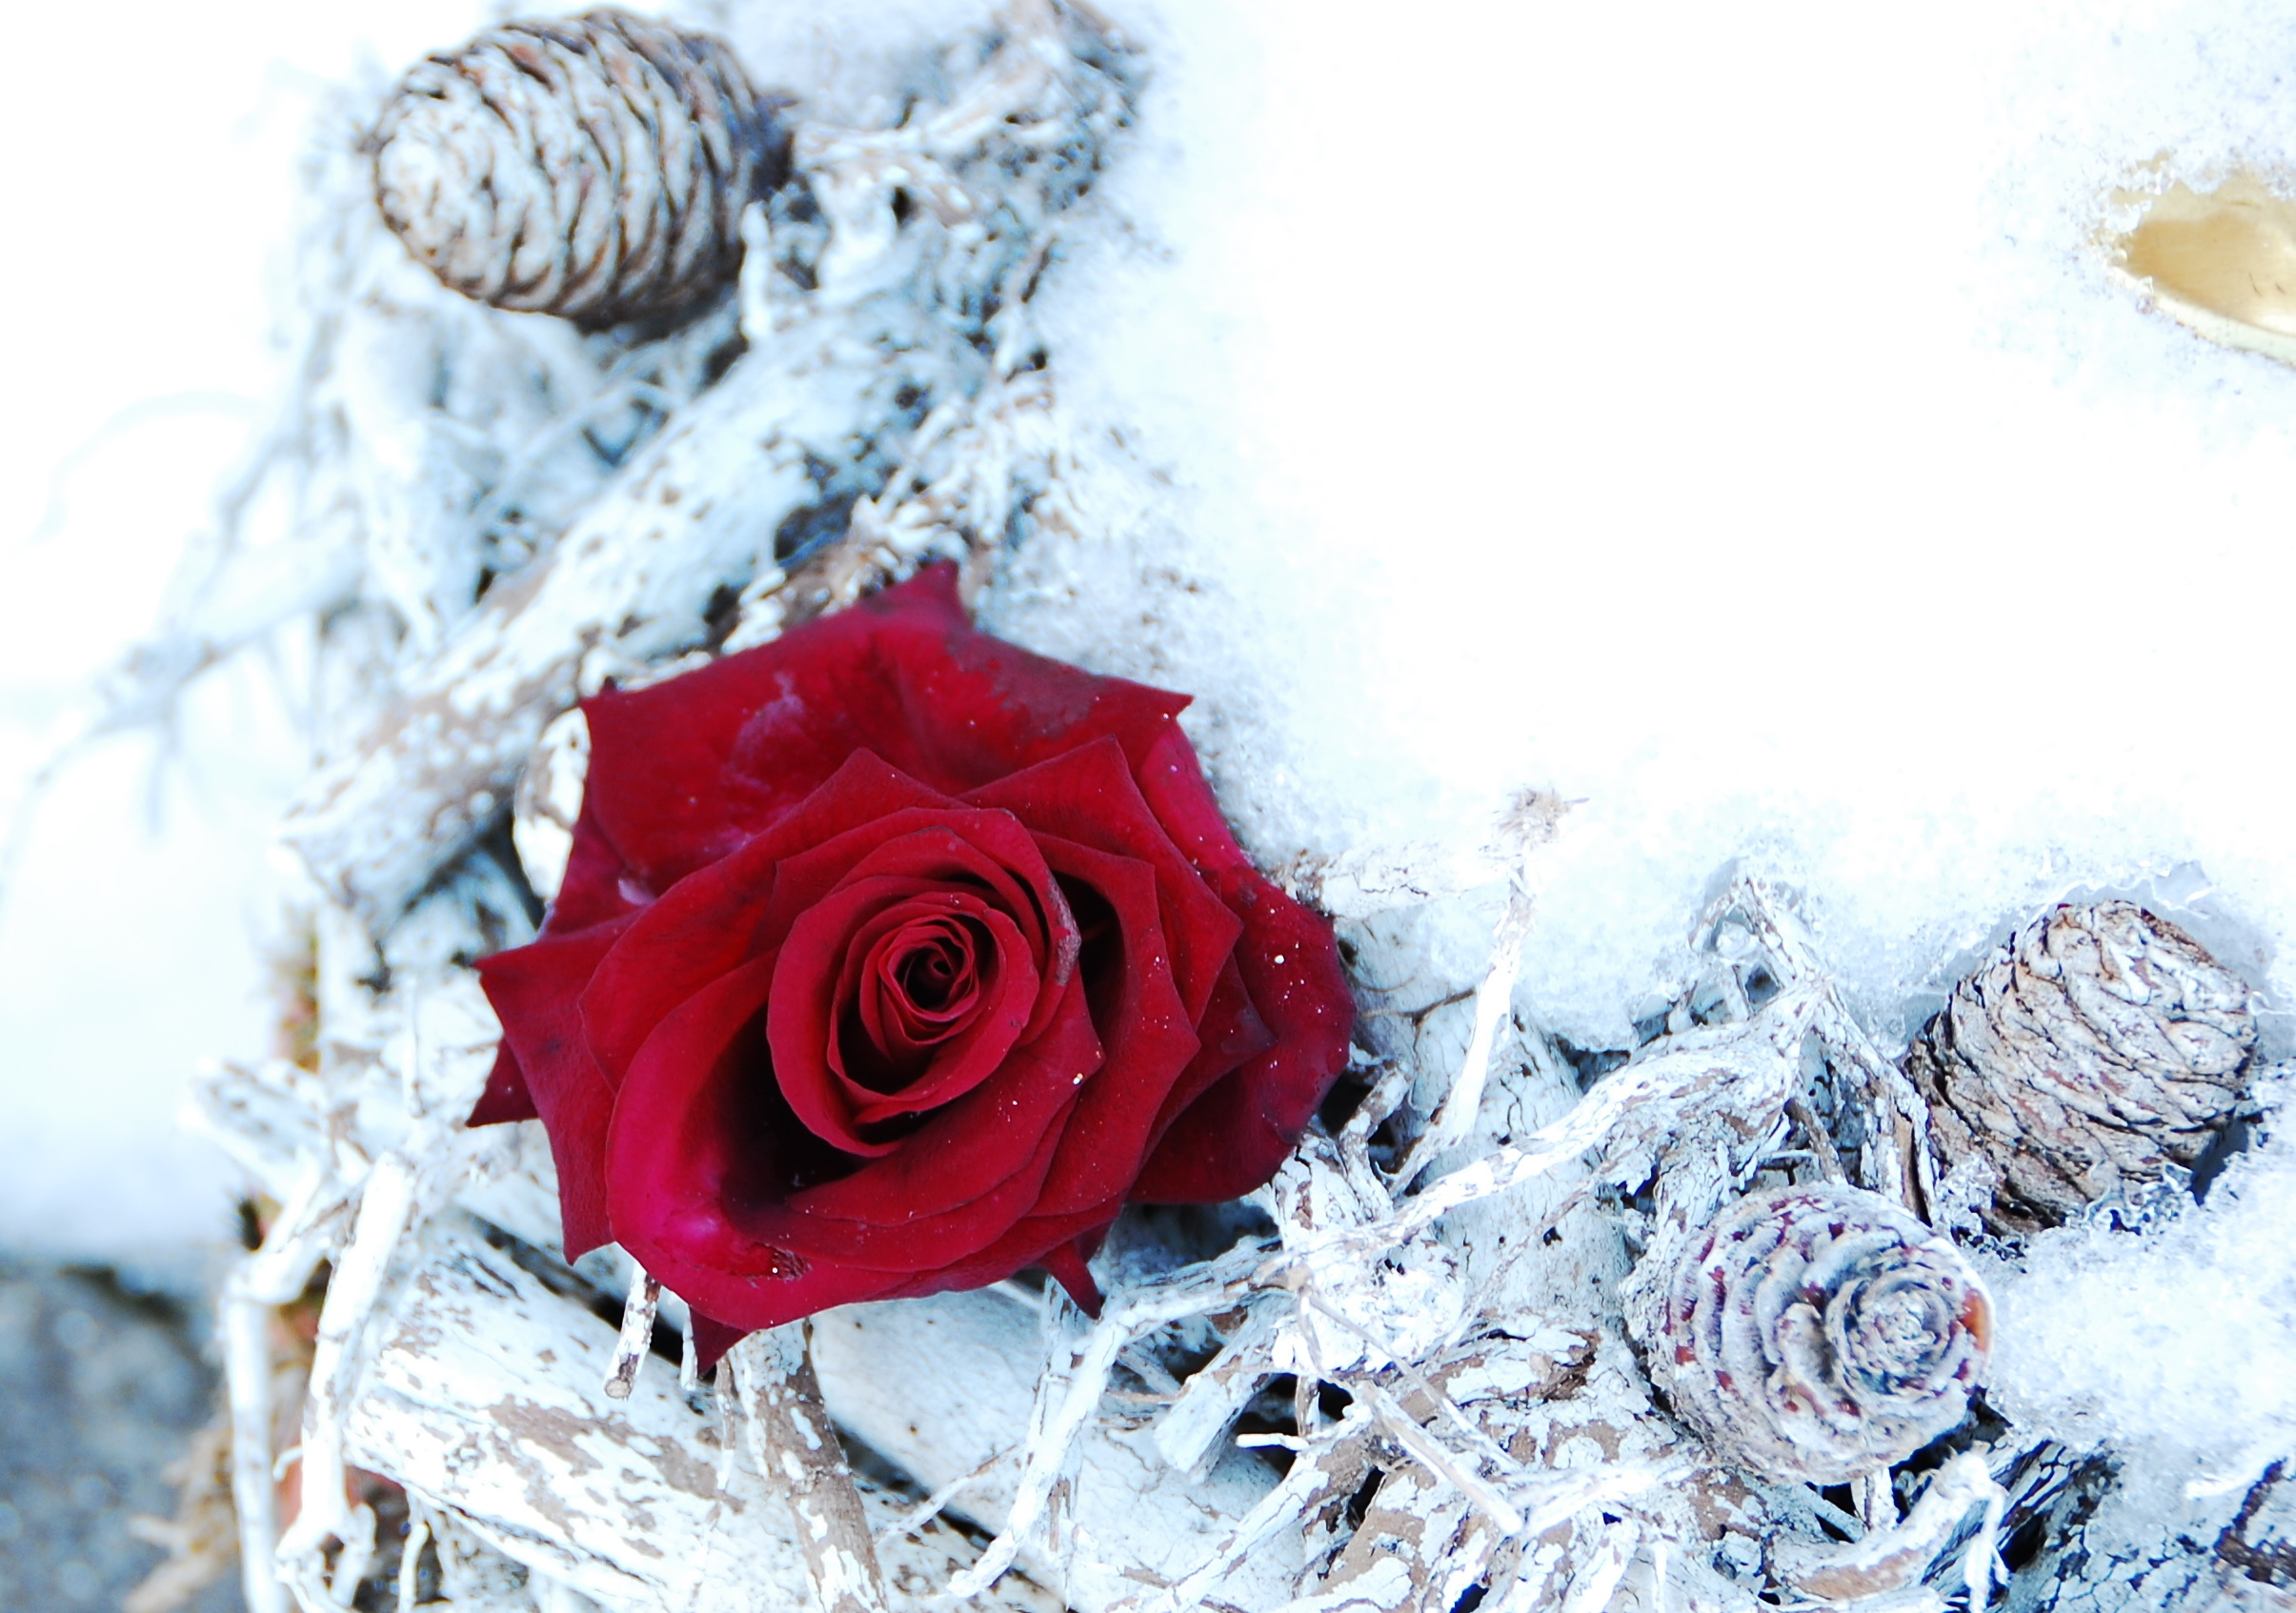 https://commons.wikimedia.org/wiki/File:Red_rose_in_snow_AB2013.JPG